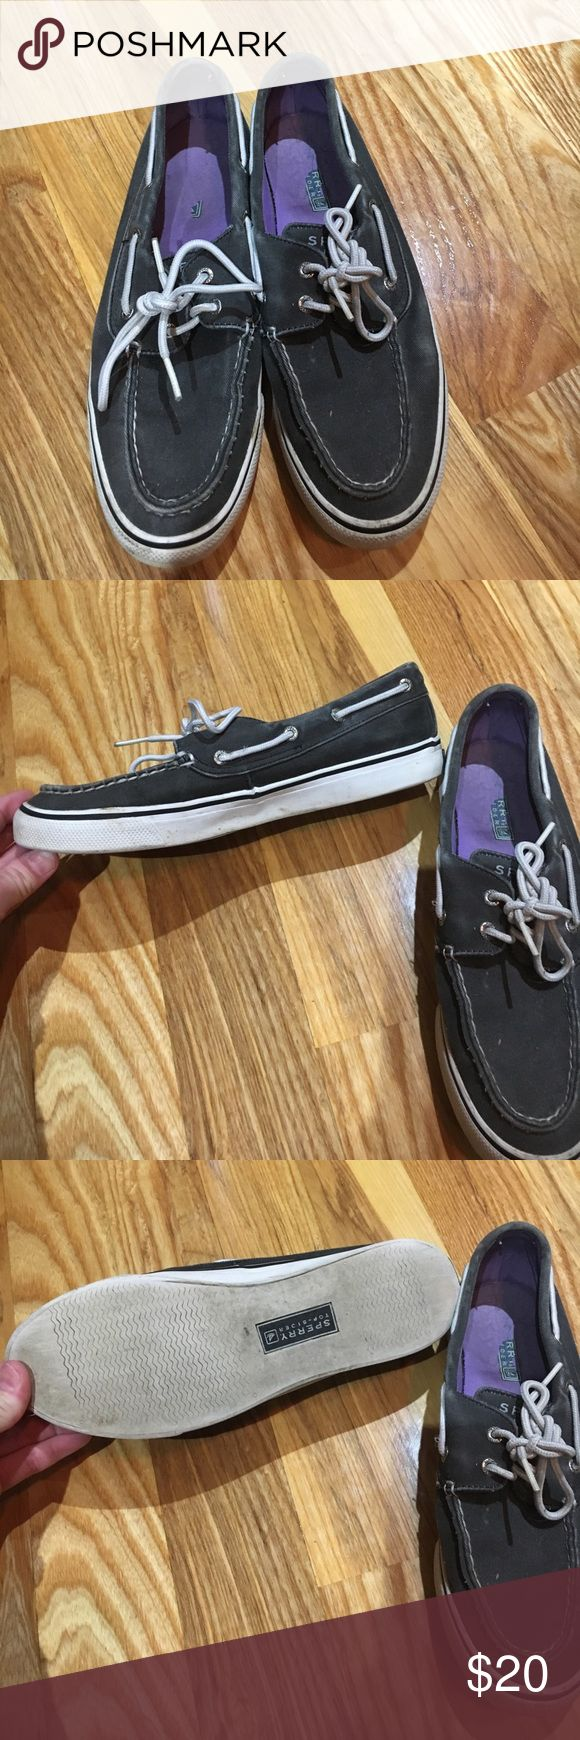 Sperry loafers Cute with jeans. Worn but still have a lot of life left. Just to tight on my feet. Sperry Shoes Flats & Loafers